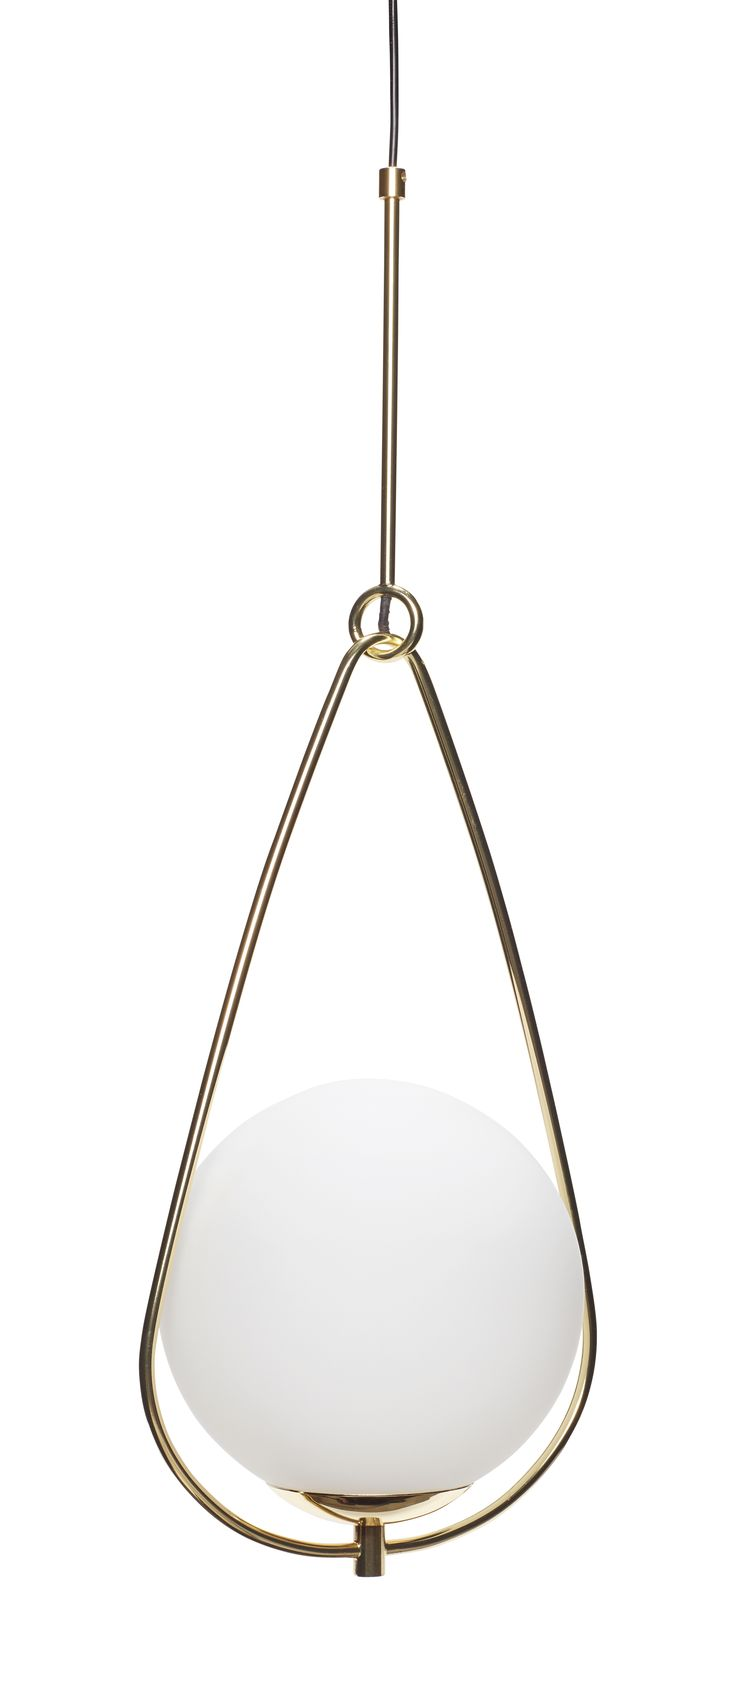 White glass and brass lamp. Item number: 890408 - Designed by Hübsch